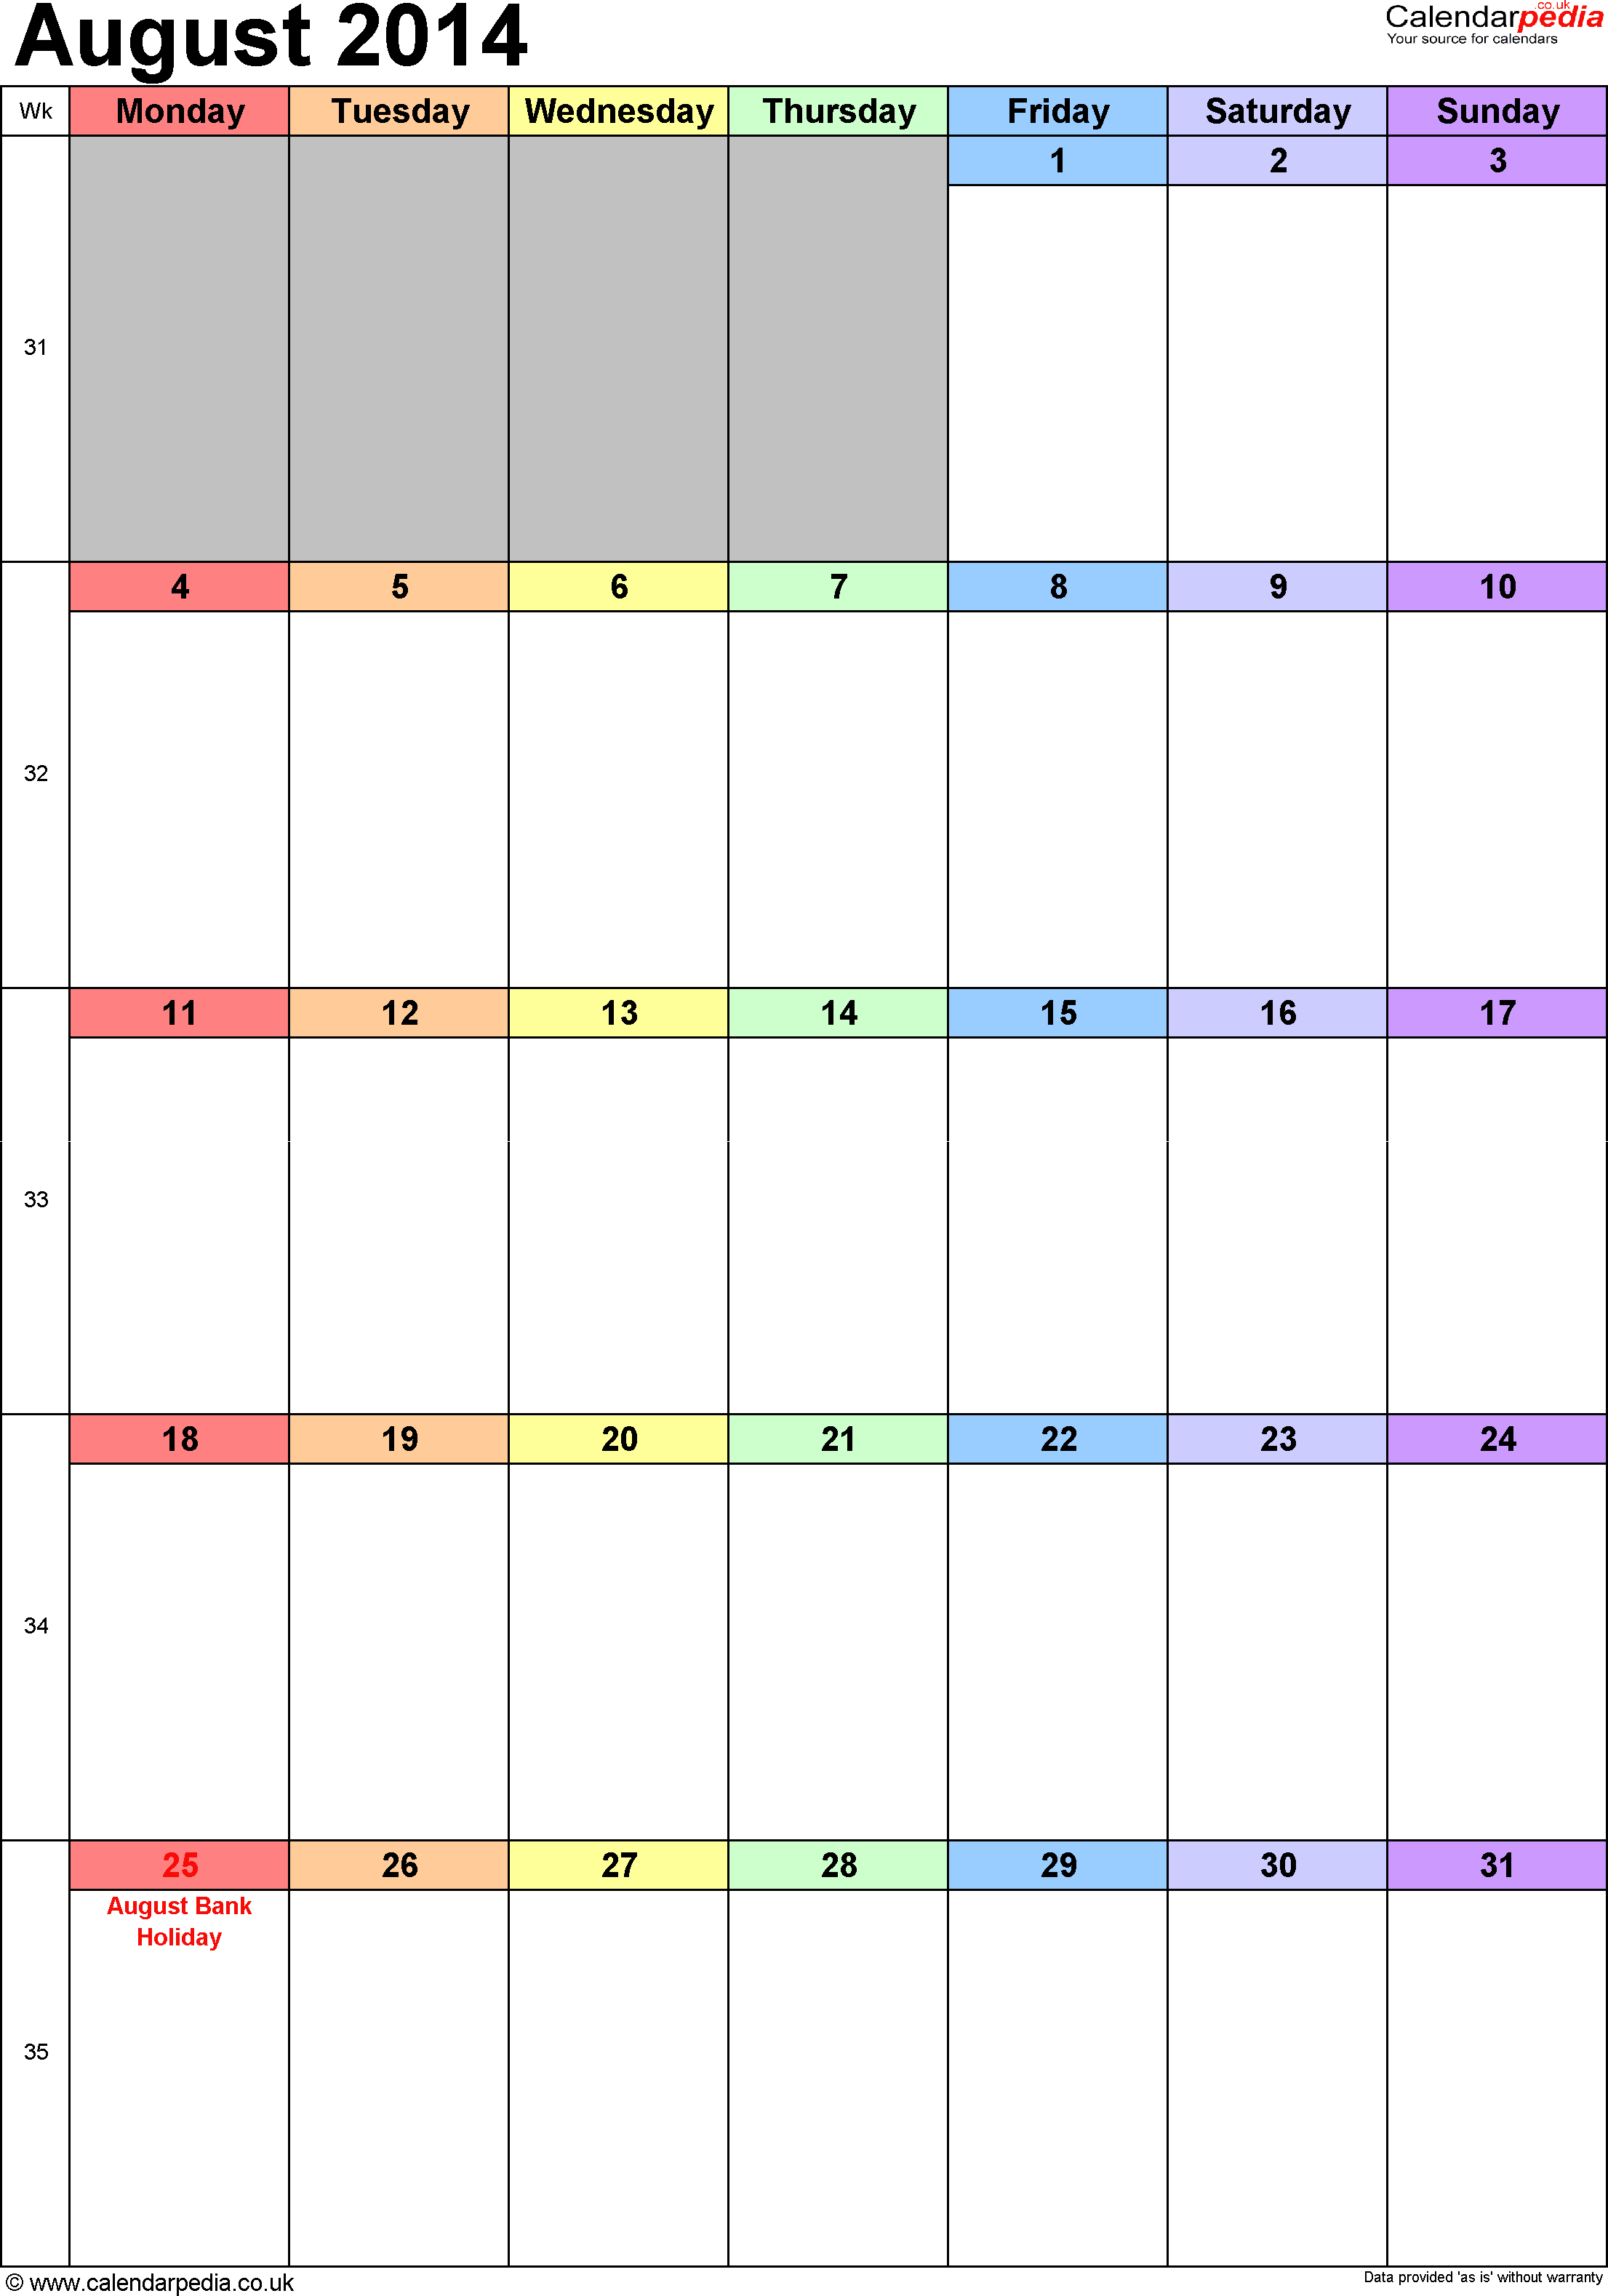 Calendar August 2014 portrait orientation, 1 page, with UK bank holidays and week numbers